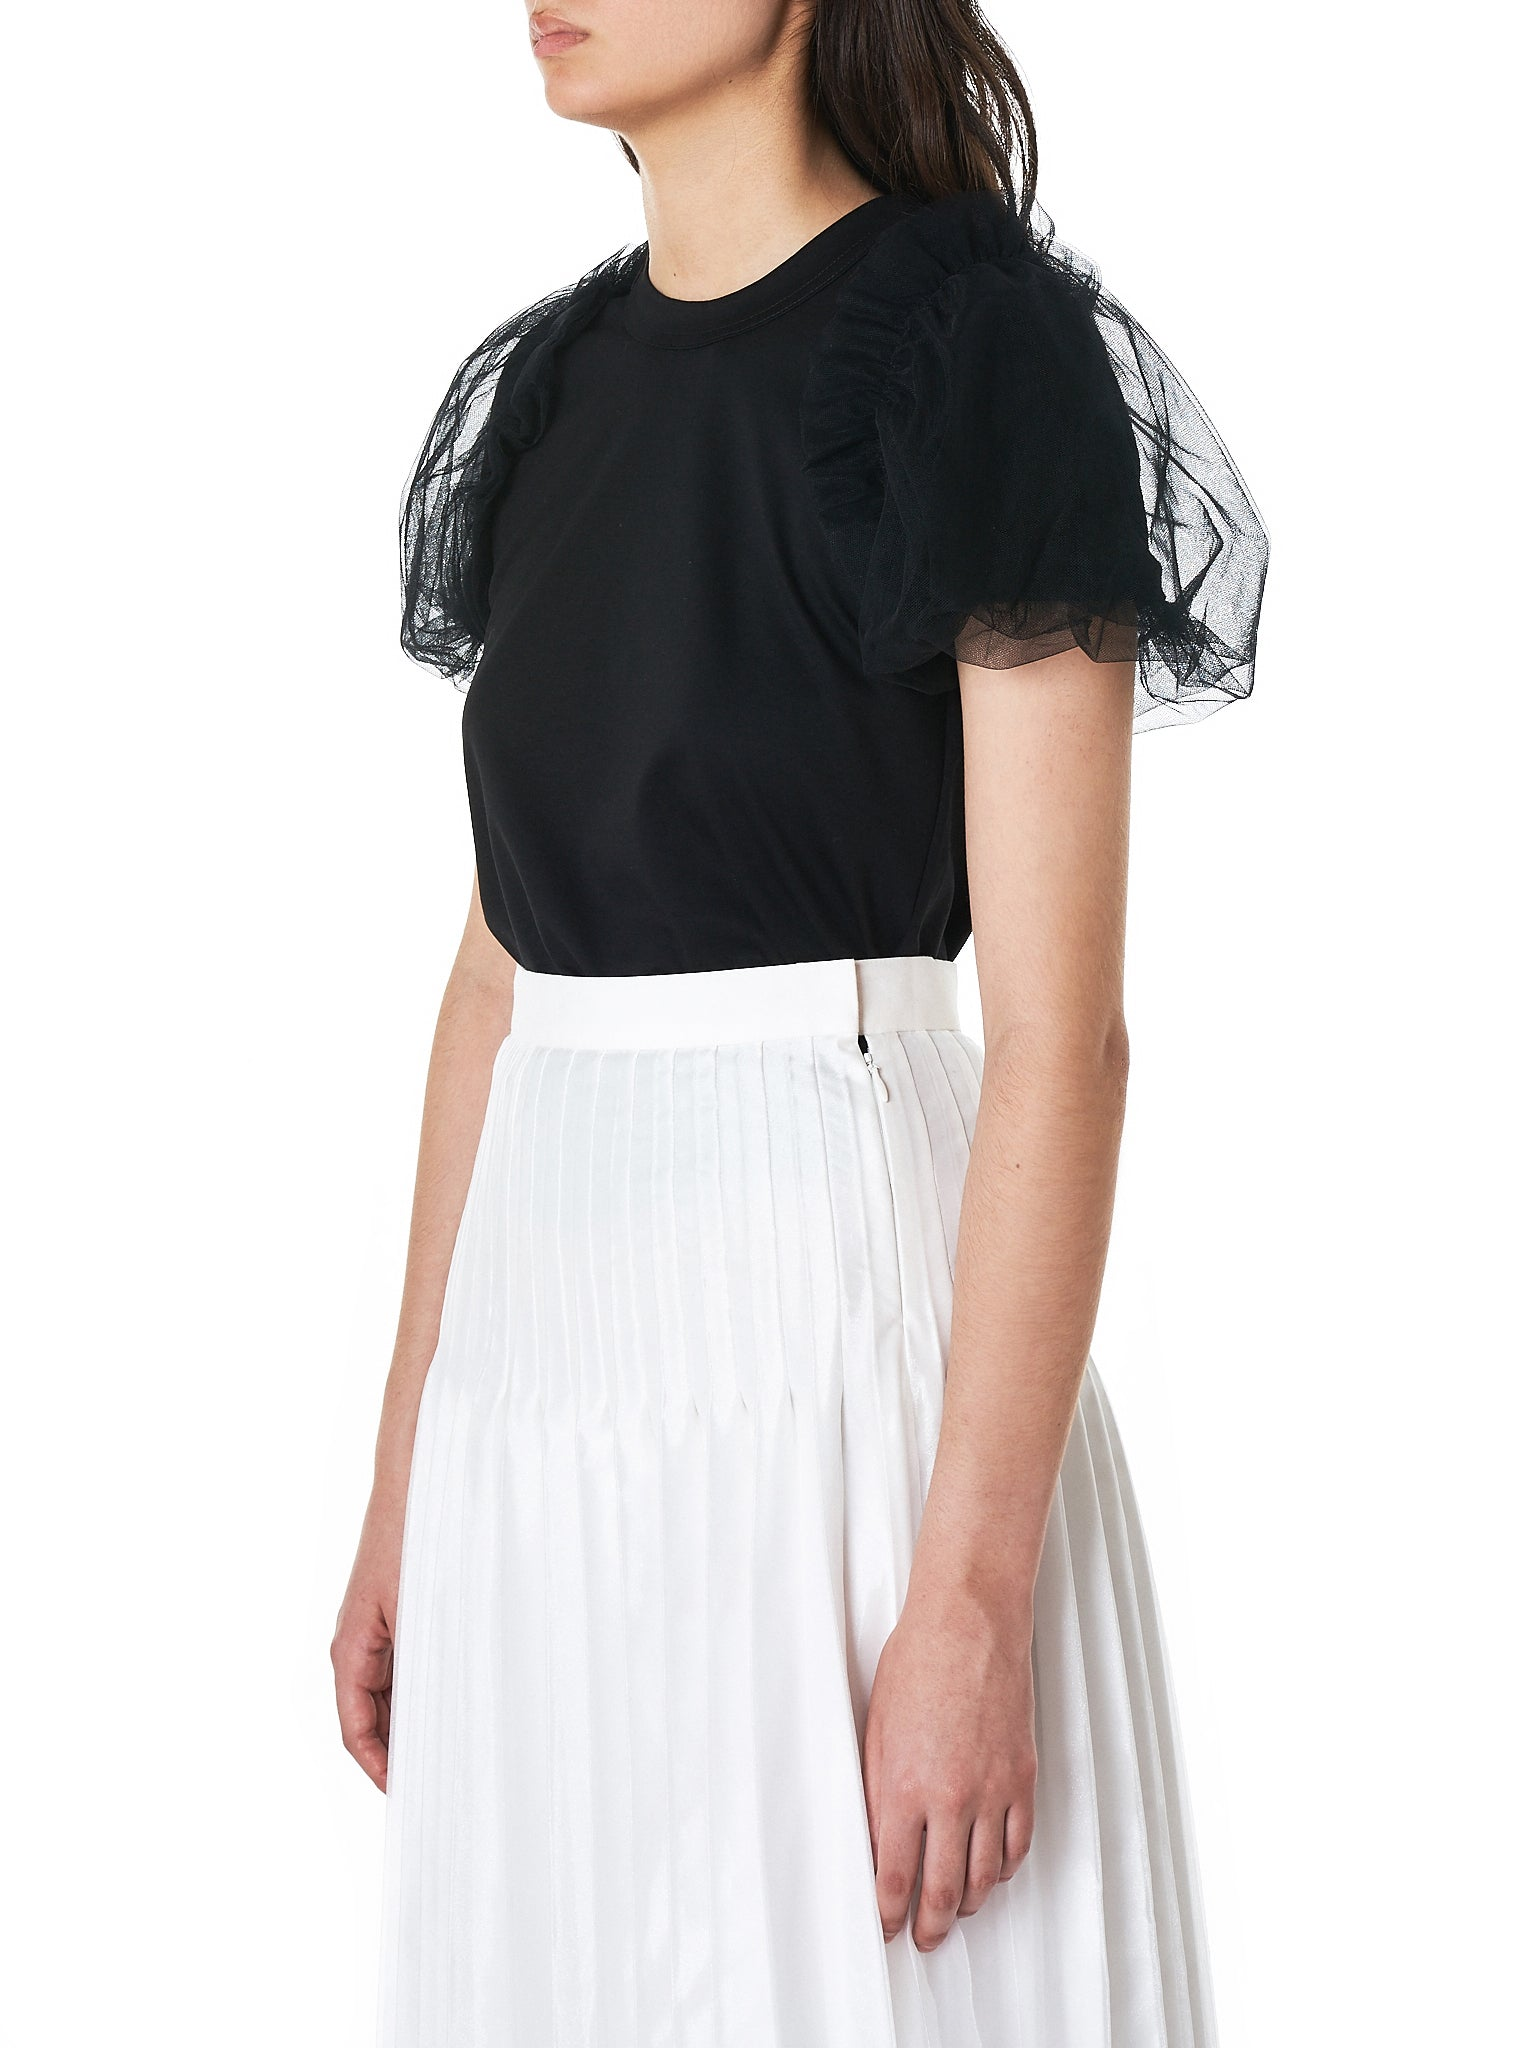 Noir by Kei Ninomiya Tee-Shirt - Hlorenzo Side